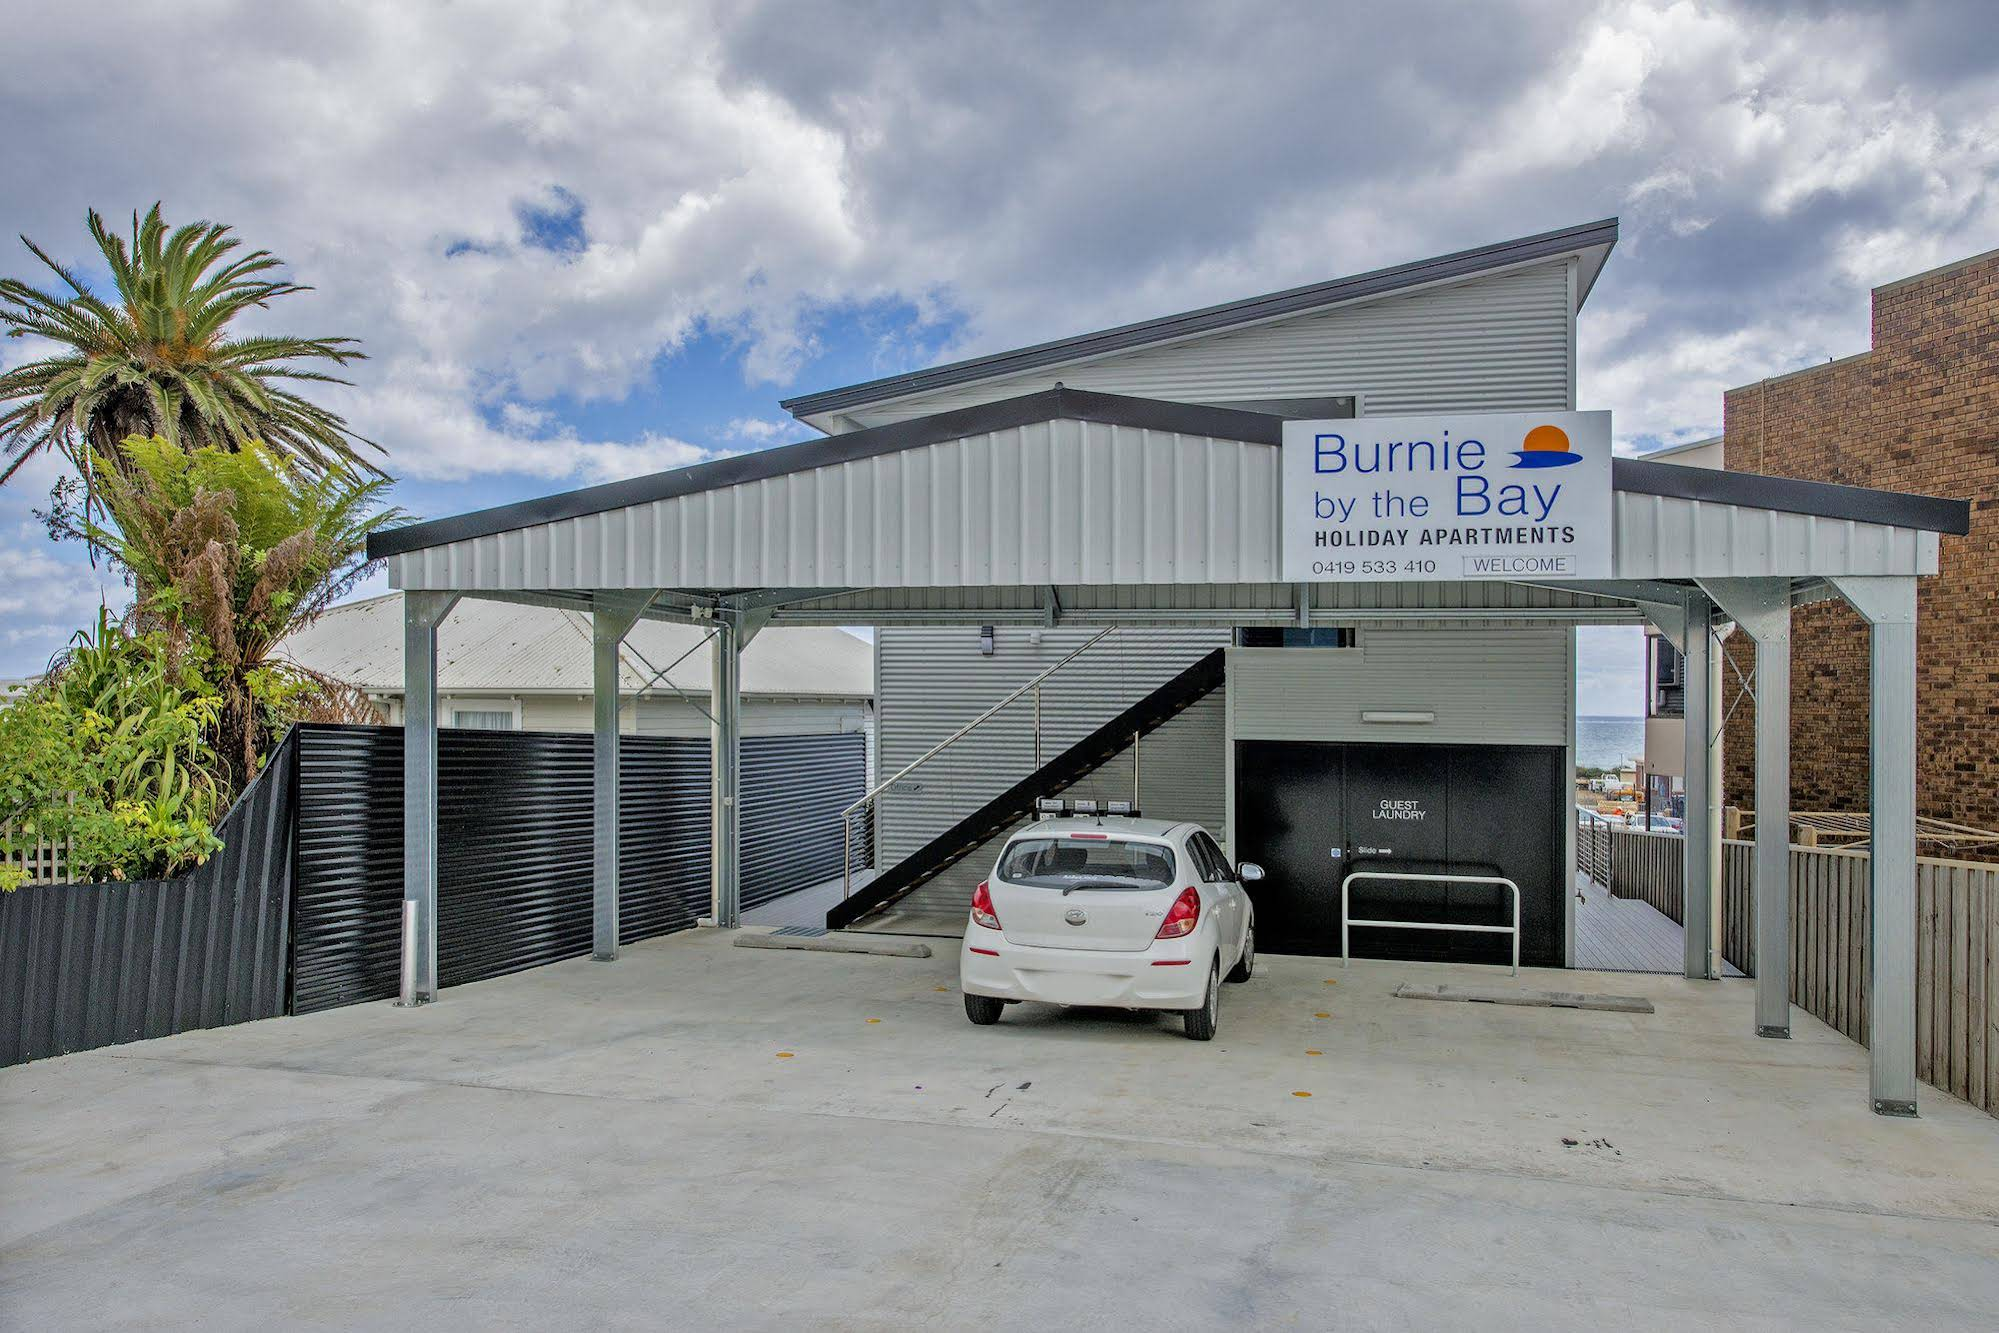 Burnie by the Bay Apartments